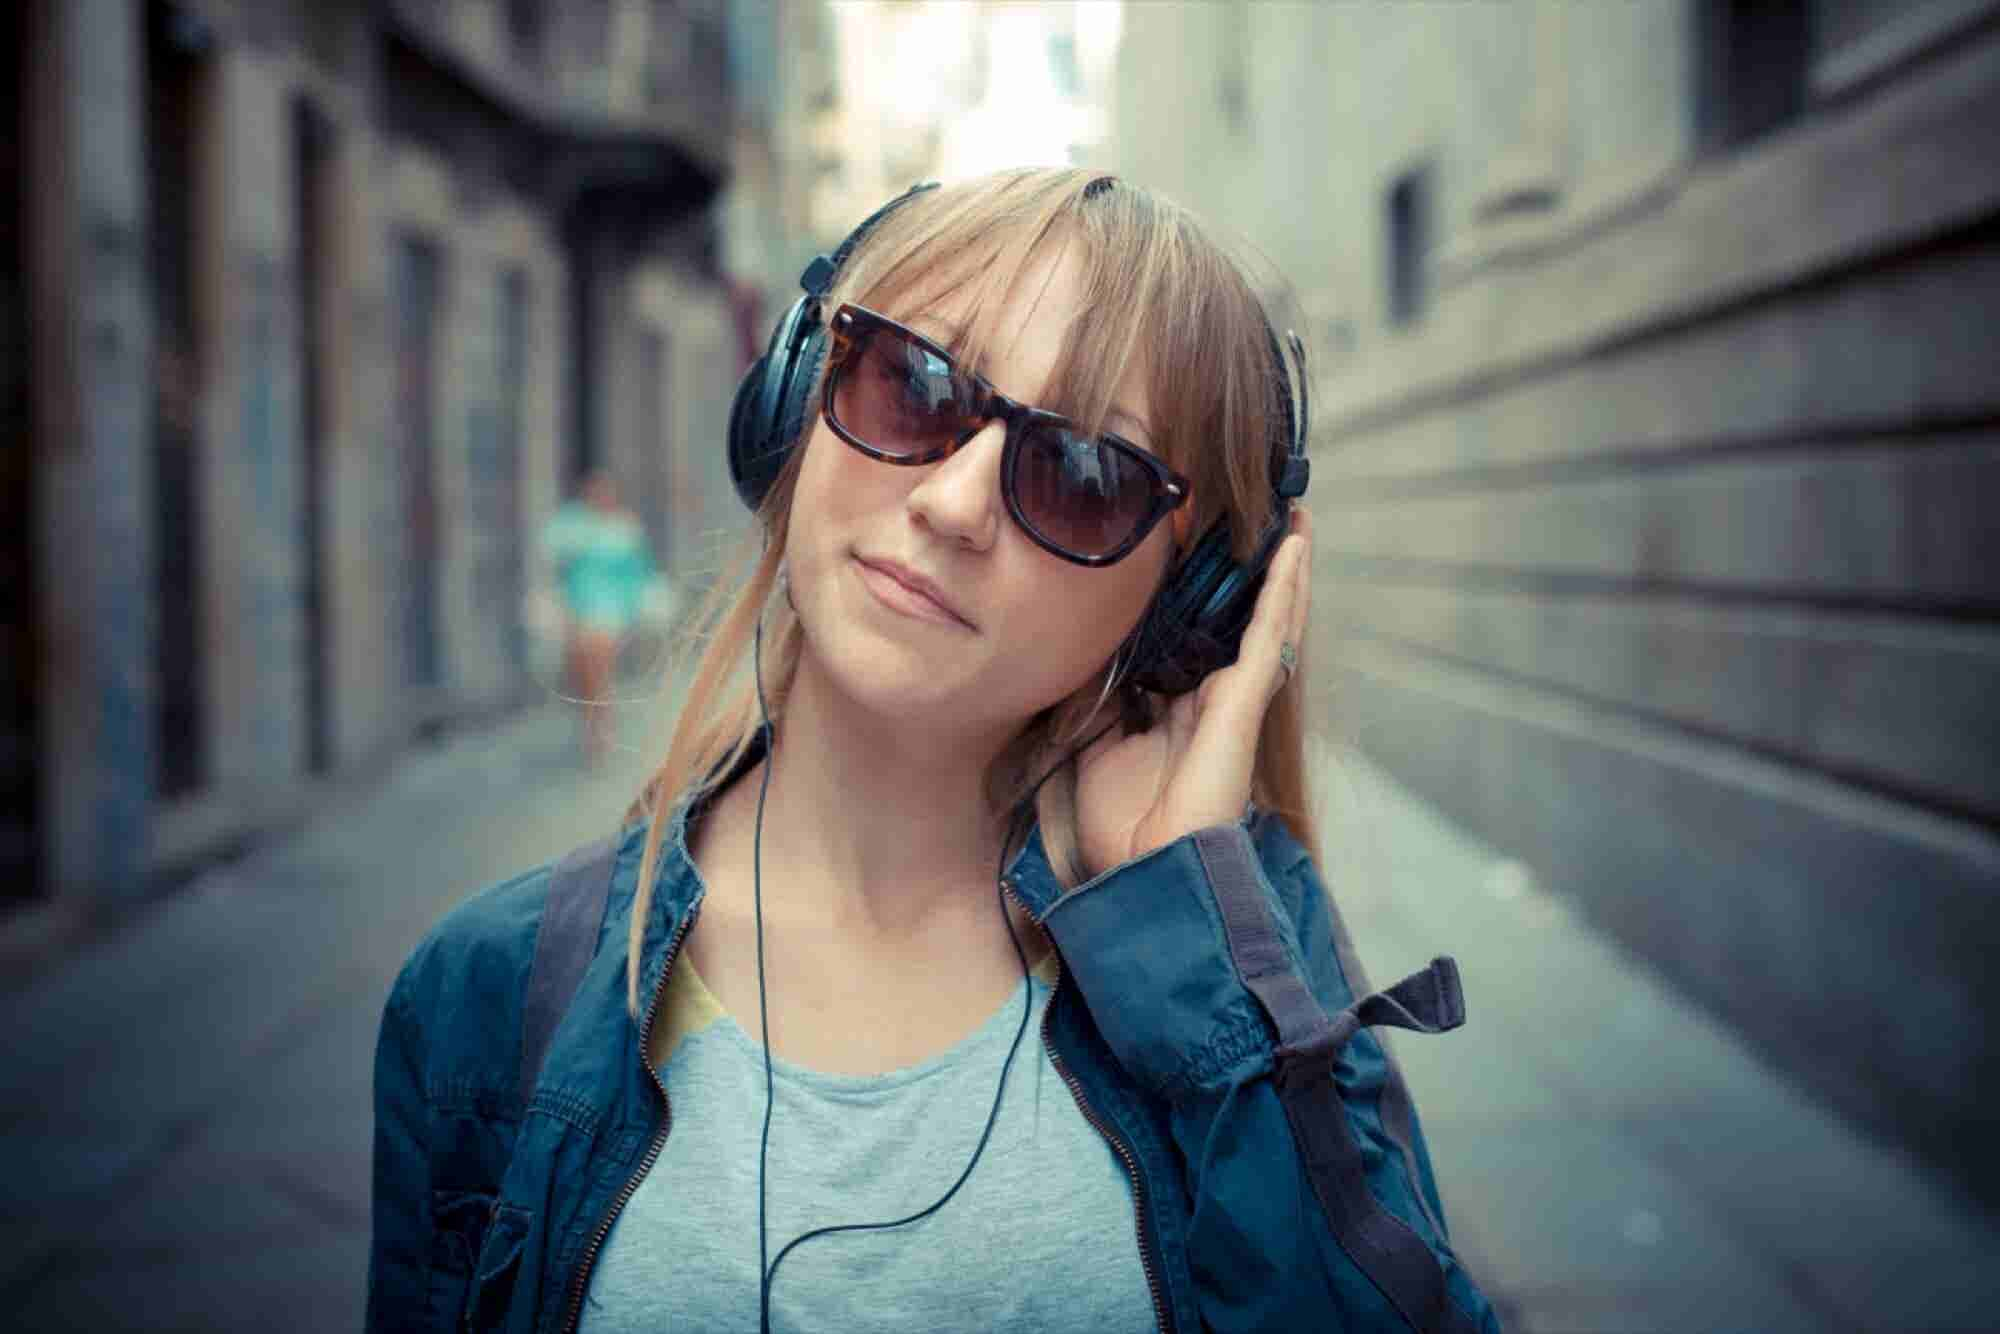 10 Songs You Must Listen To Stay Motivated